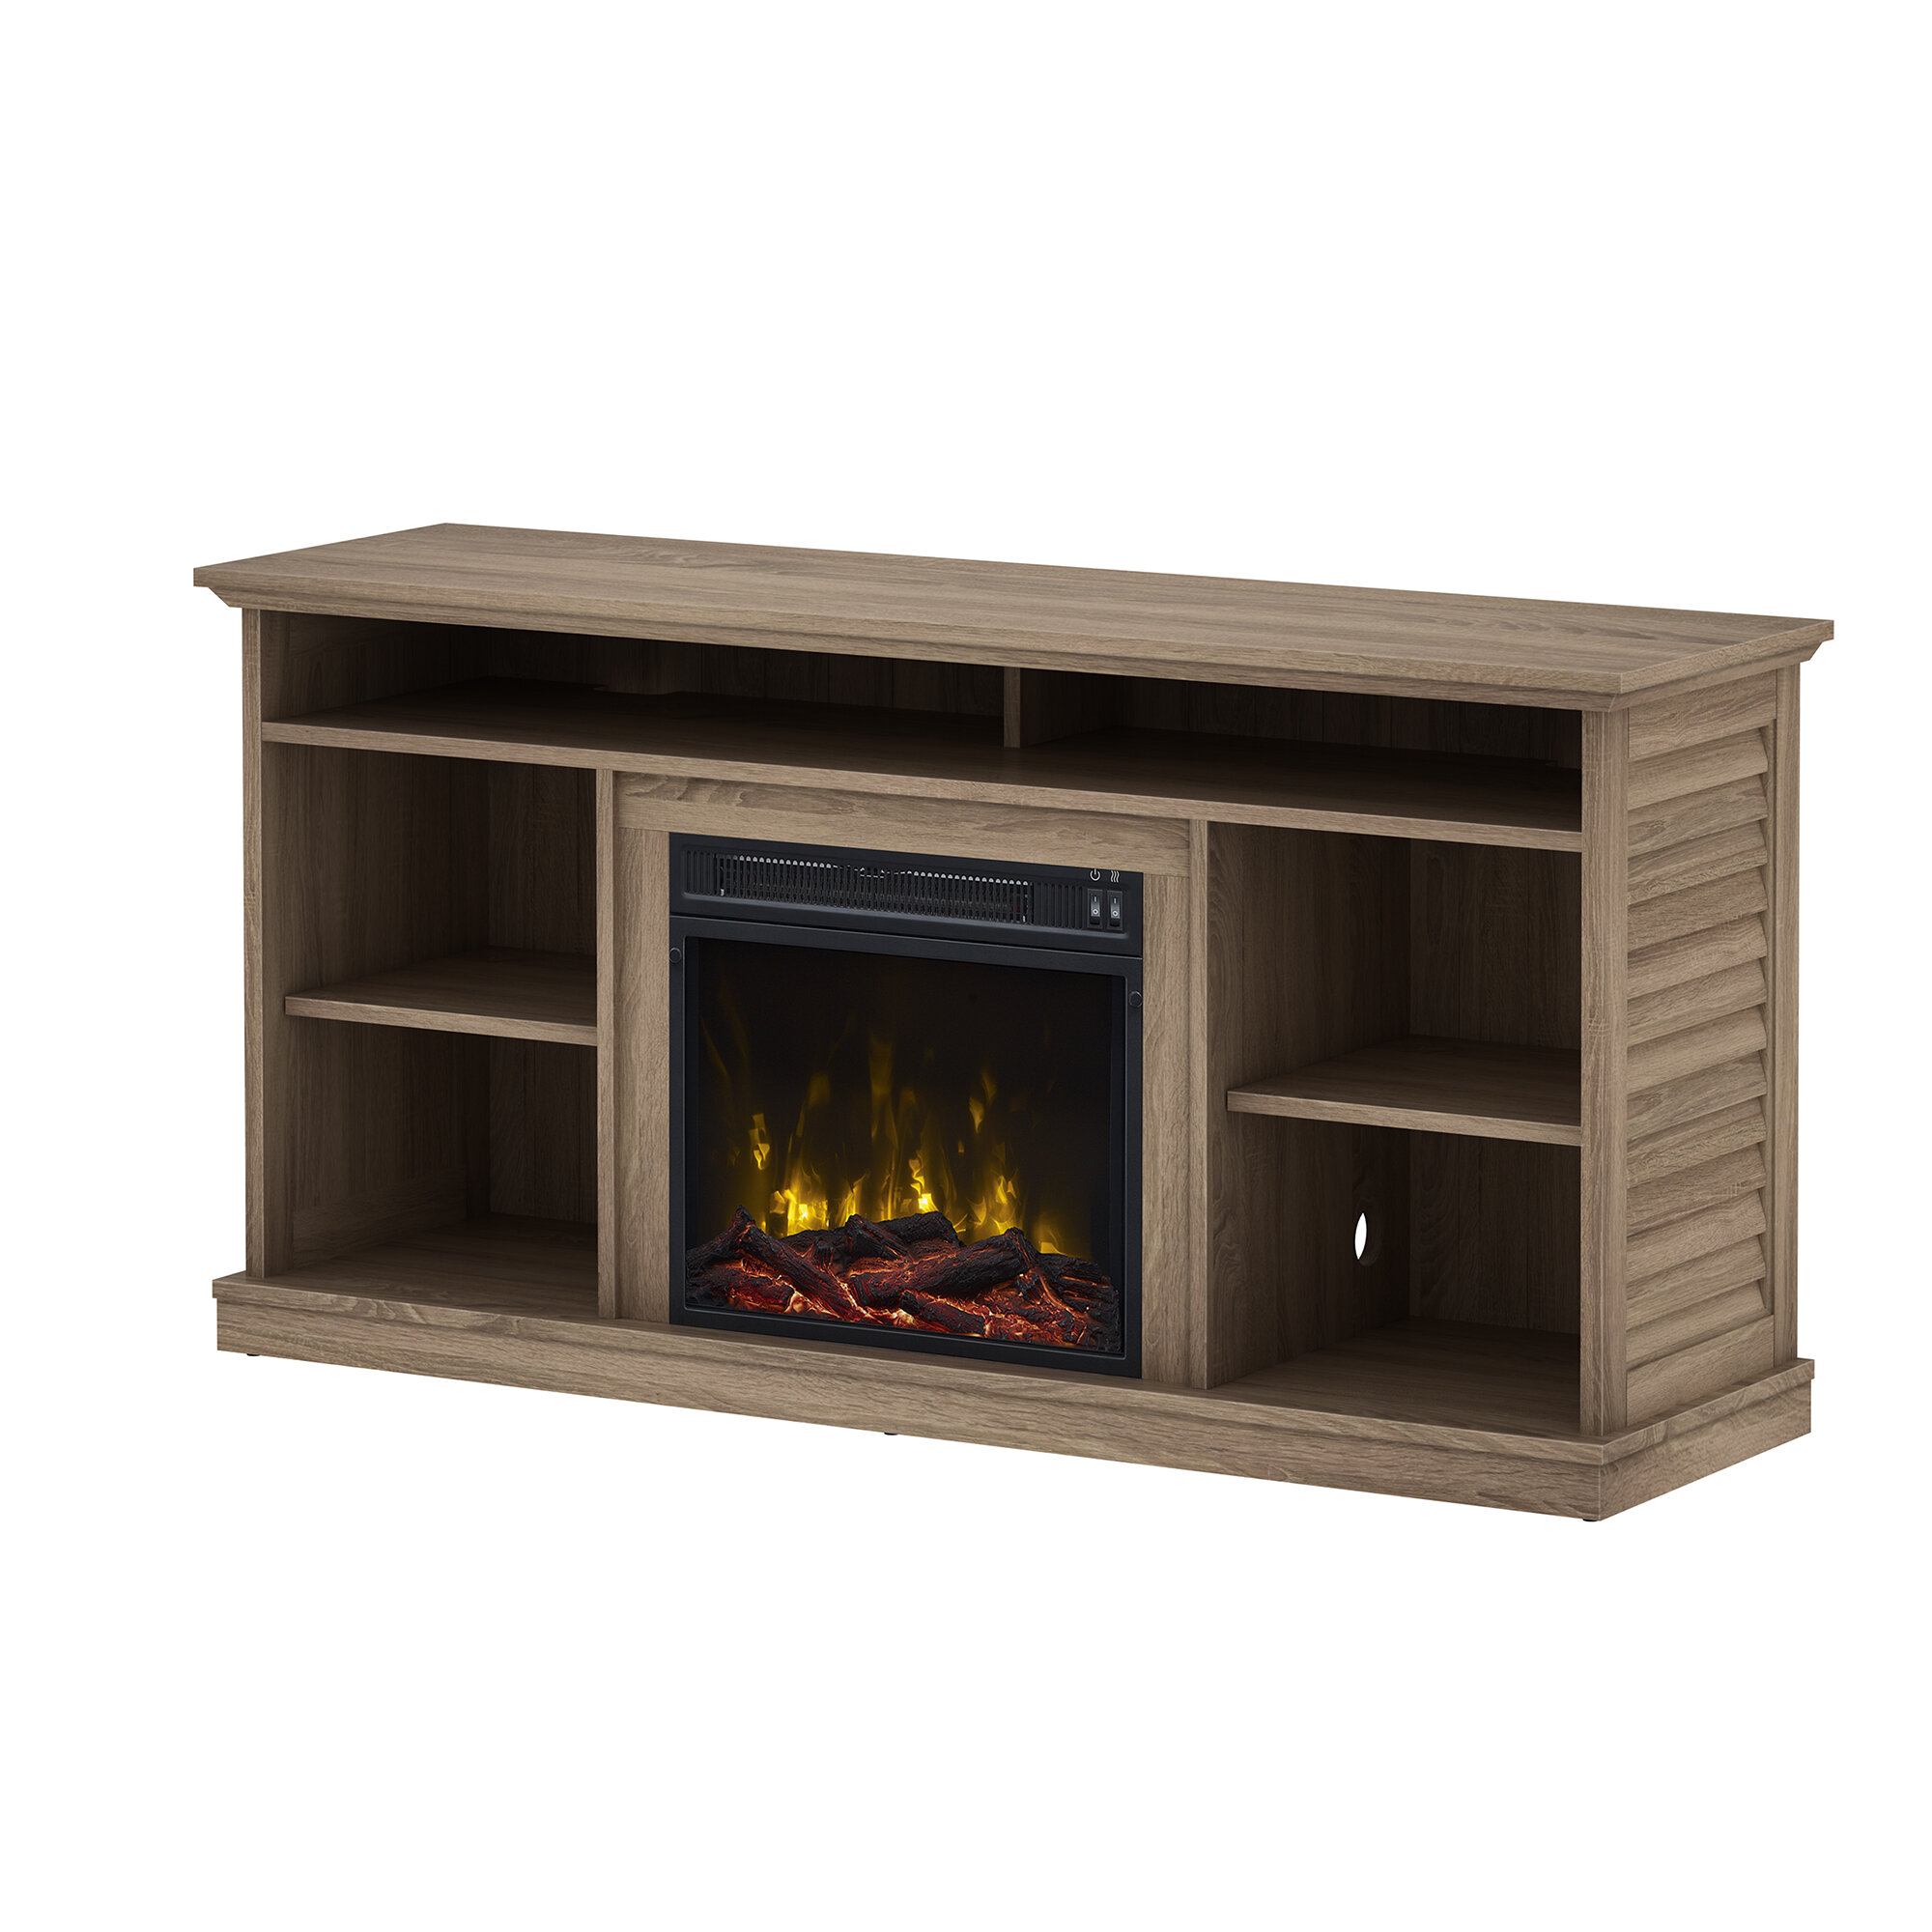 Alcott Hill Phelps 545 Tv Stand With Optional Fireplace &